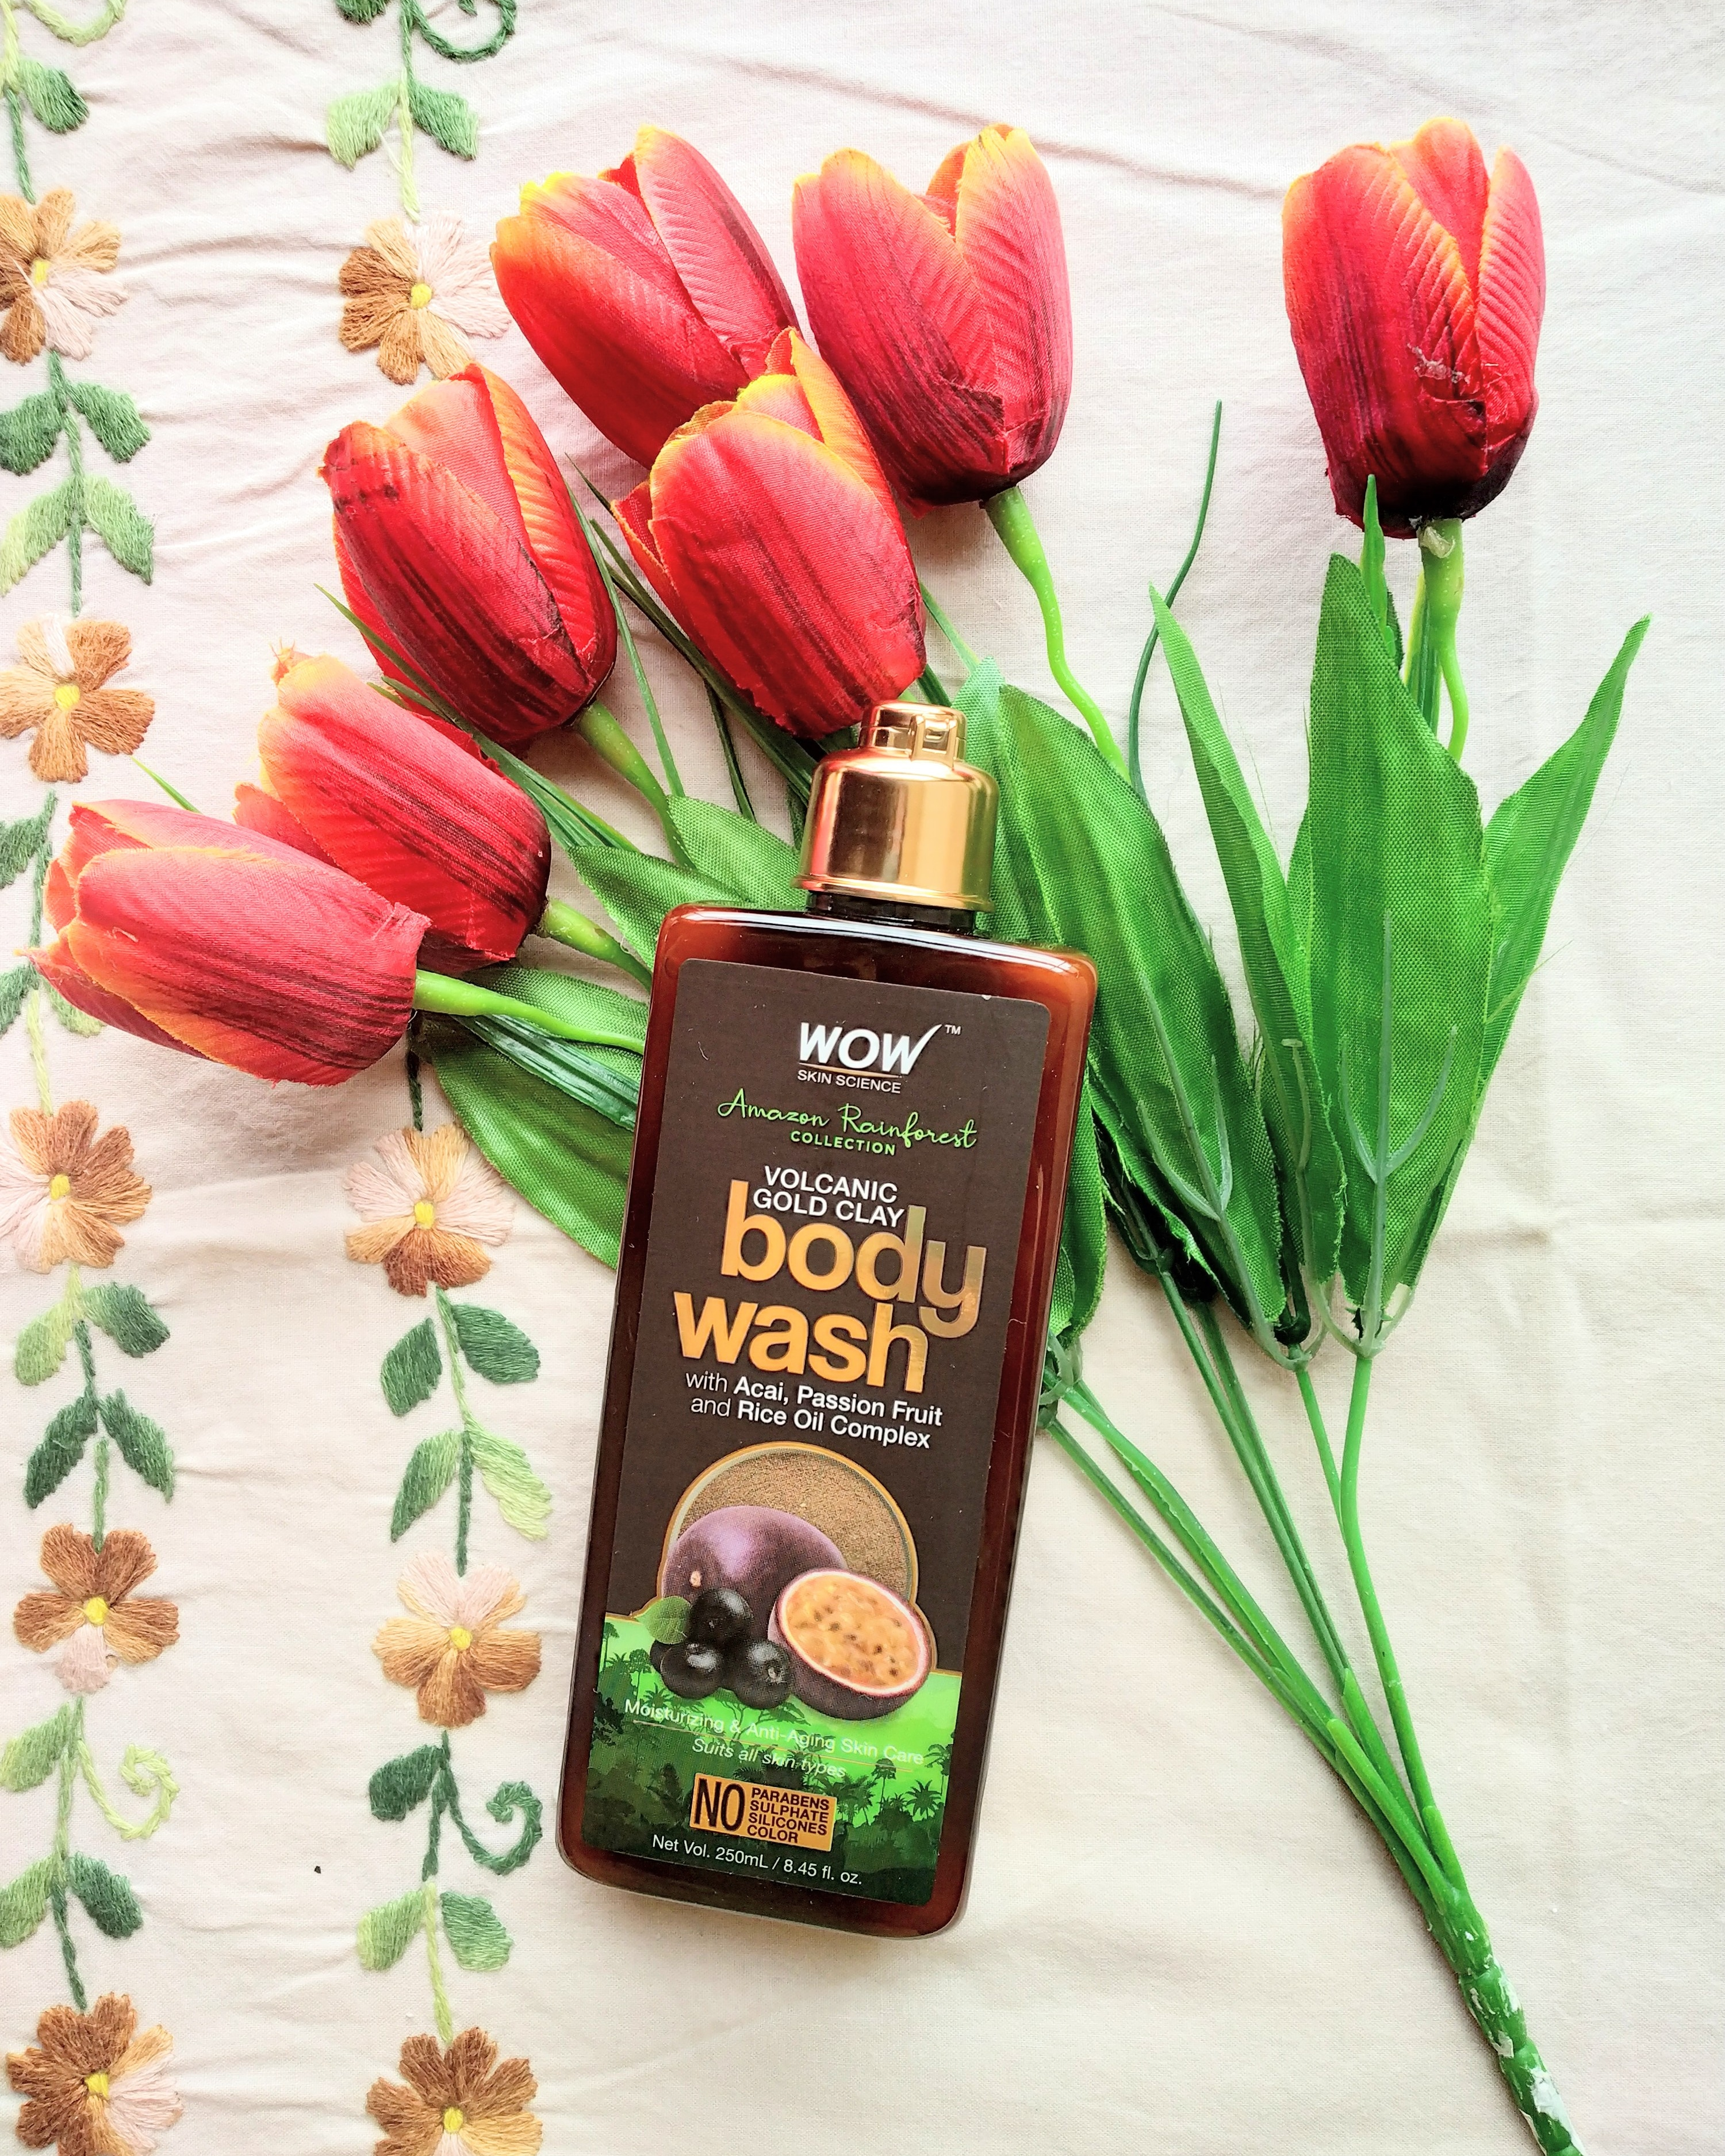 WOW Skin Science Amazon Rainforest Volcanic Gold Clay Body Wash-In love with this moisture boosting foaming body wash-By payal_garg